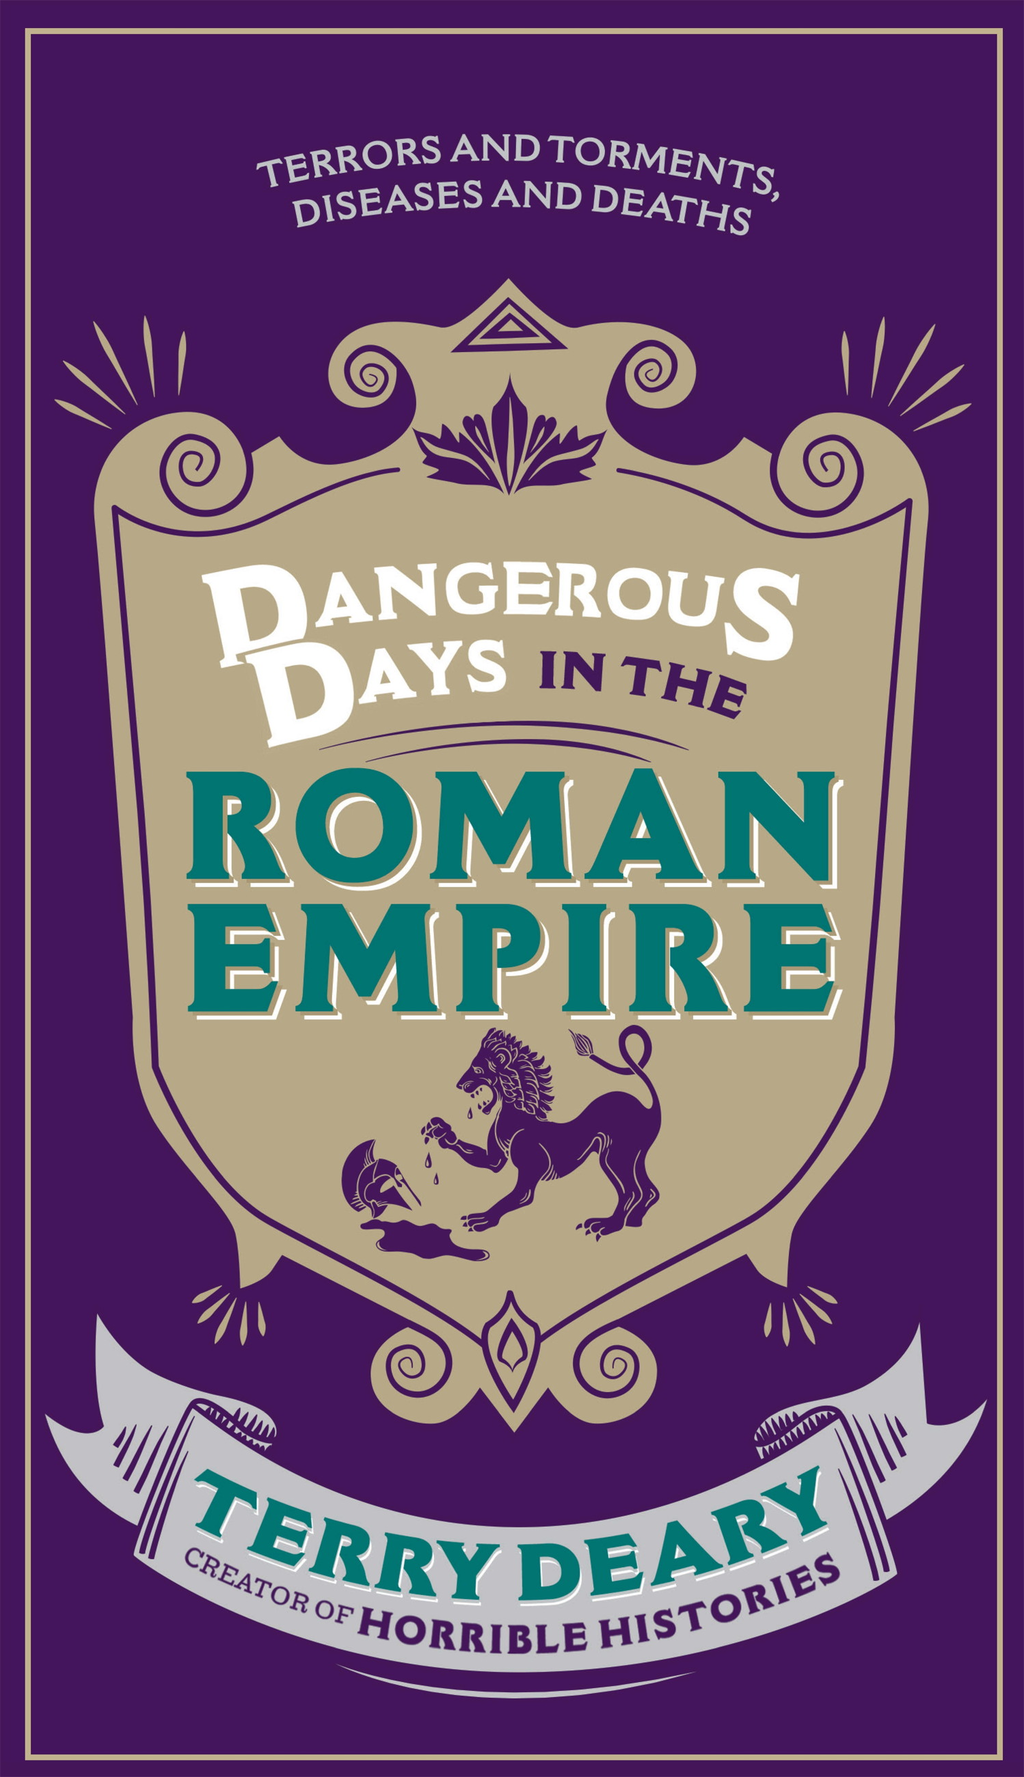 Dangerous Days in the Roman Empire Terrors and Torments,  Diseases and Deaths